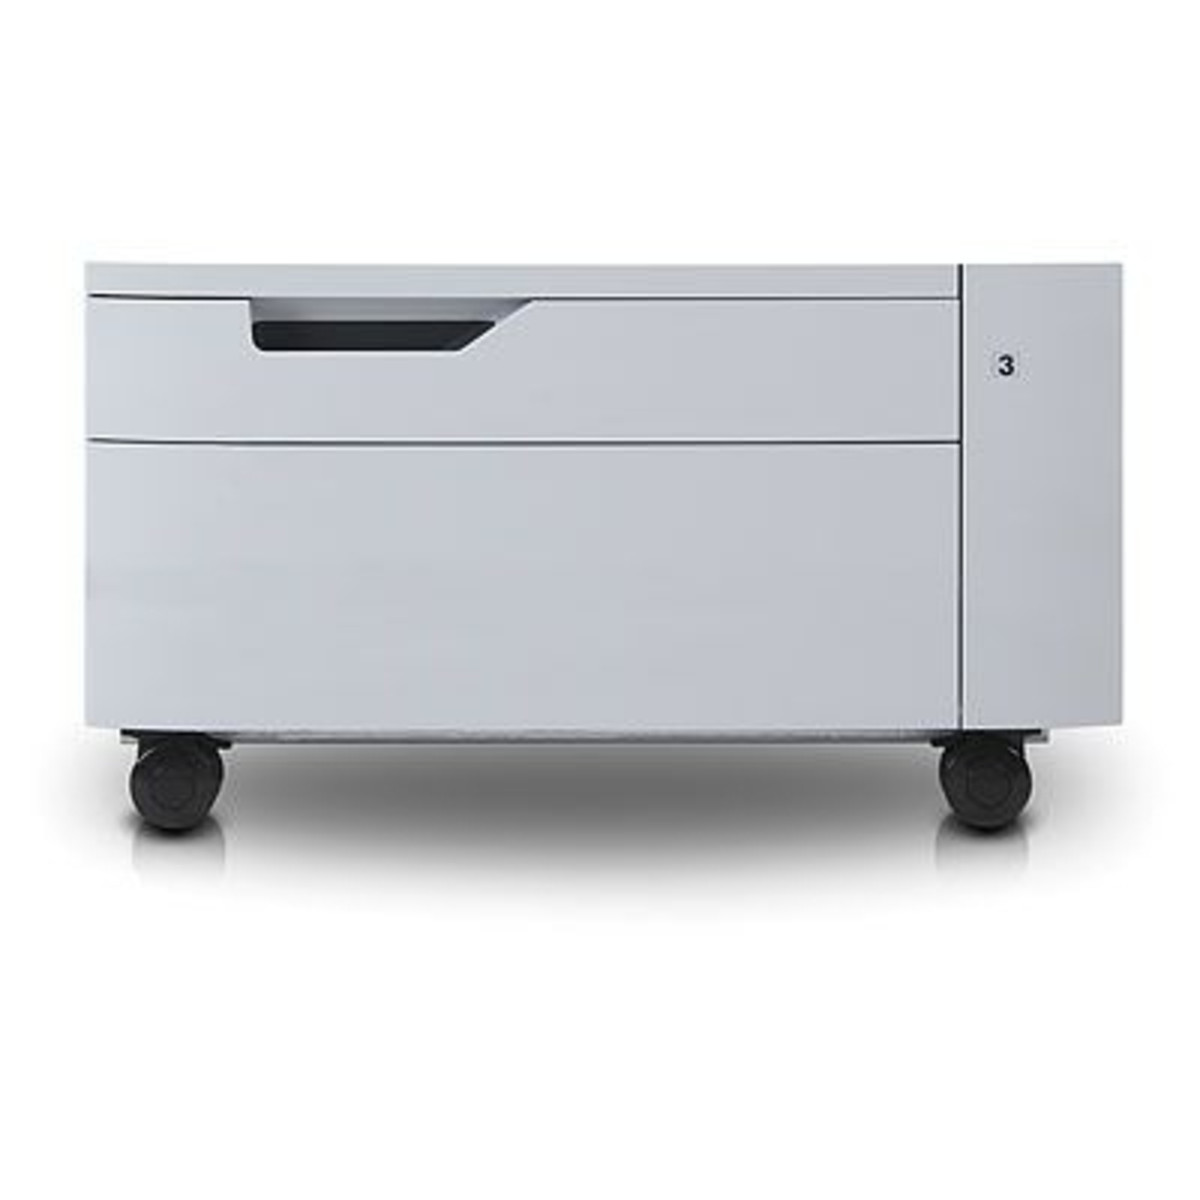 HP Colour Laserjet 500-Sheet Paper Feeder and Cabinet